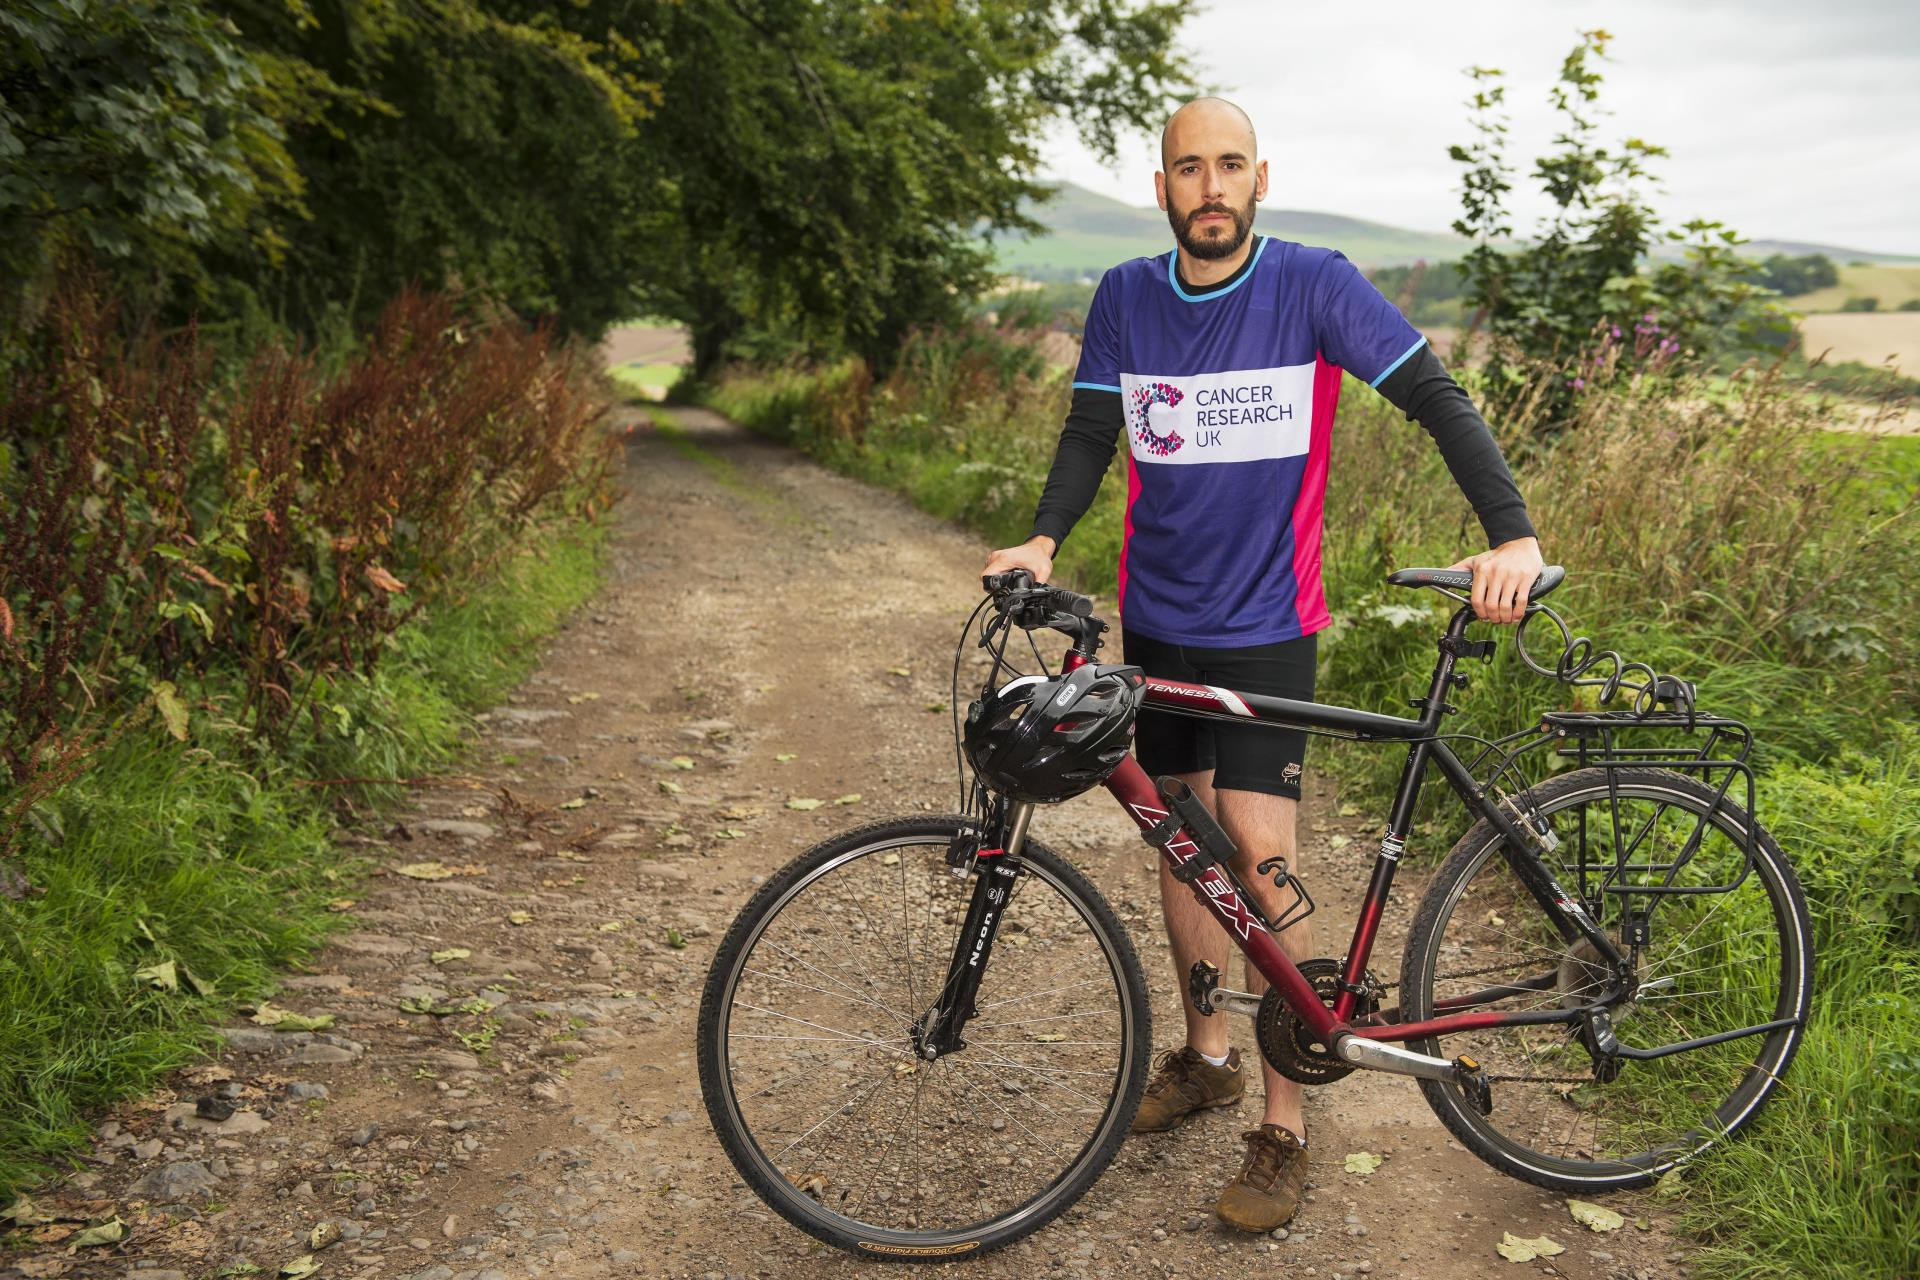 University of Dundee cancer researcher Dr Laureano de la Vega getting on his bike to promote Cancer Research UK 300.